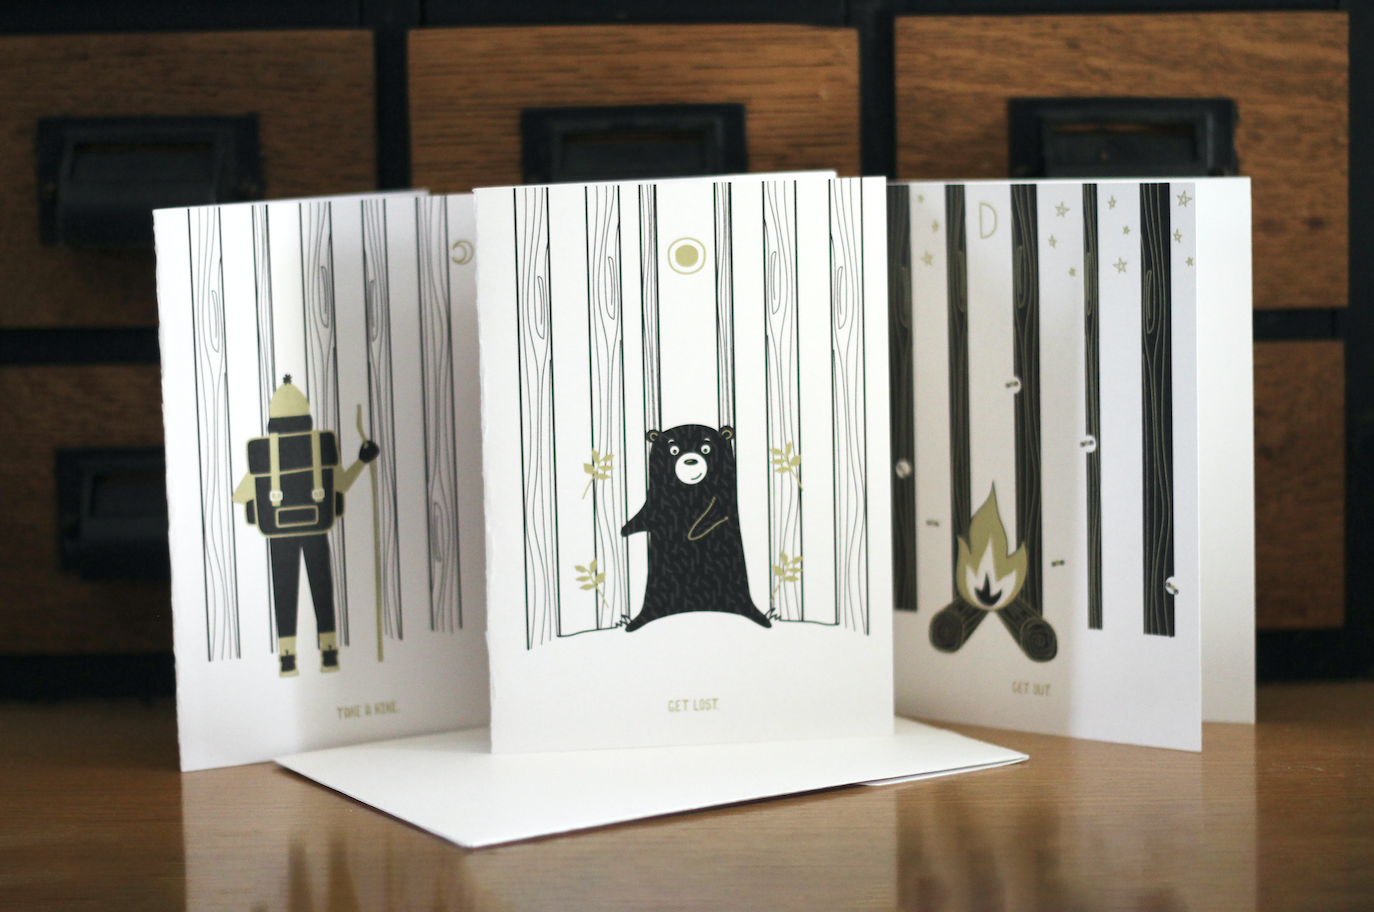 Unearthed Greeting Card Series by Heather Rolin